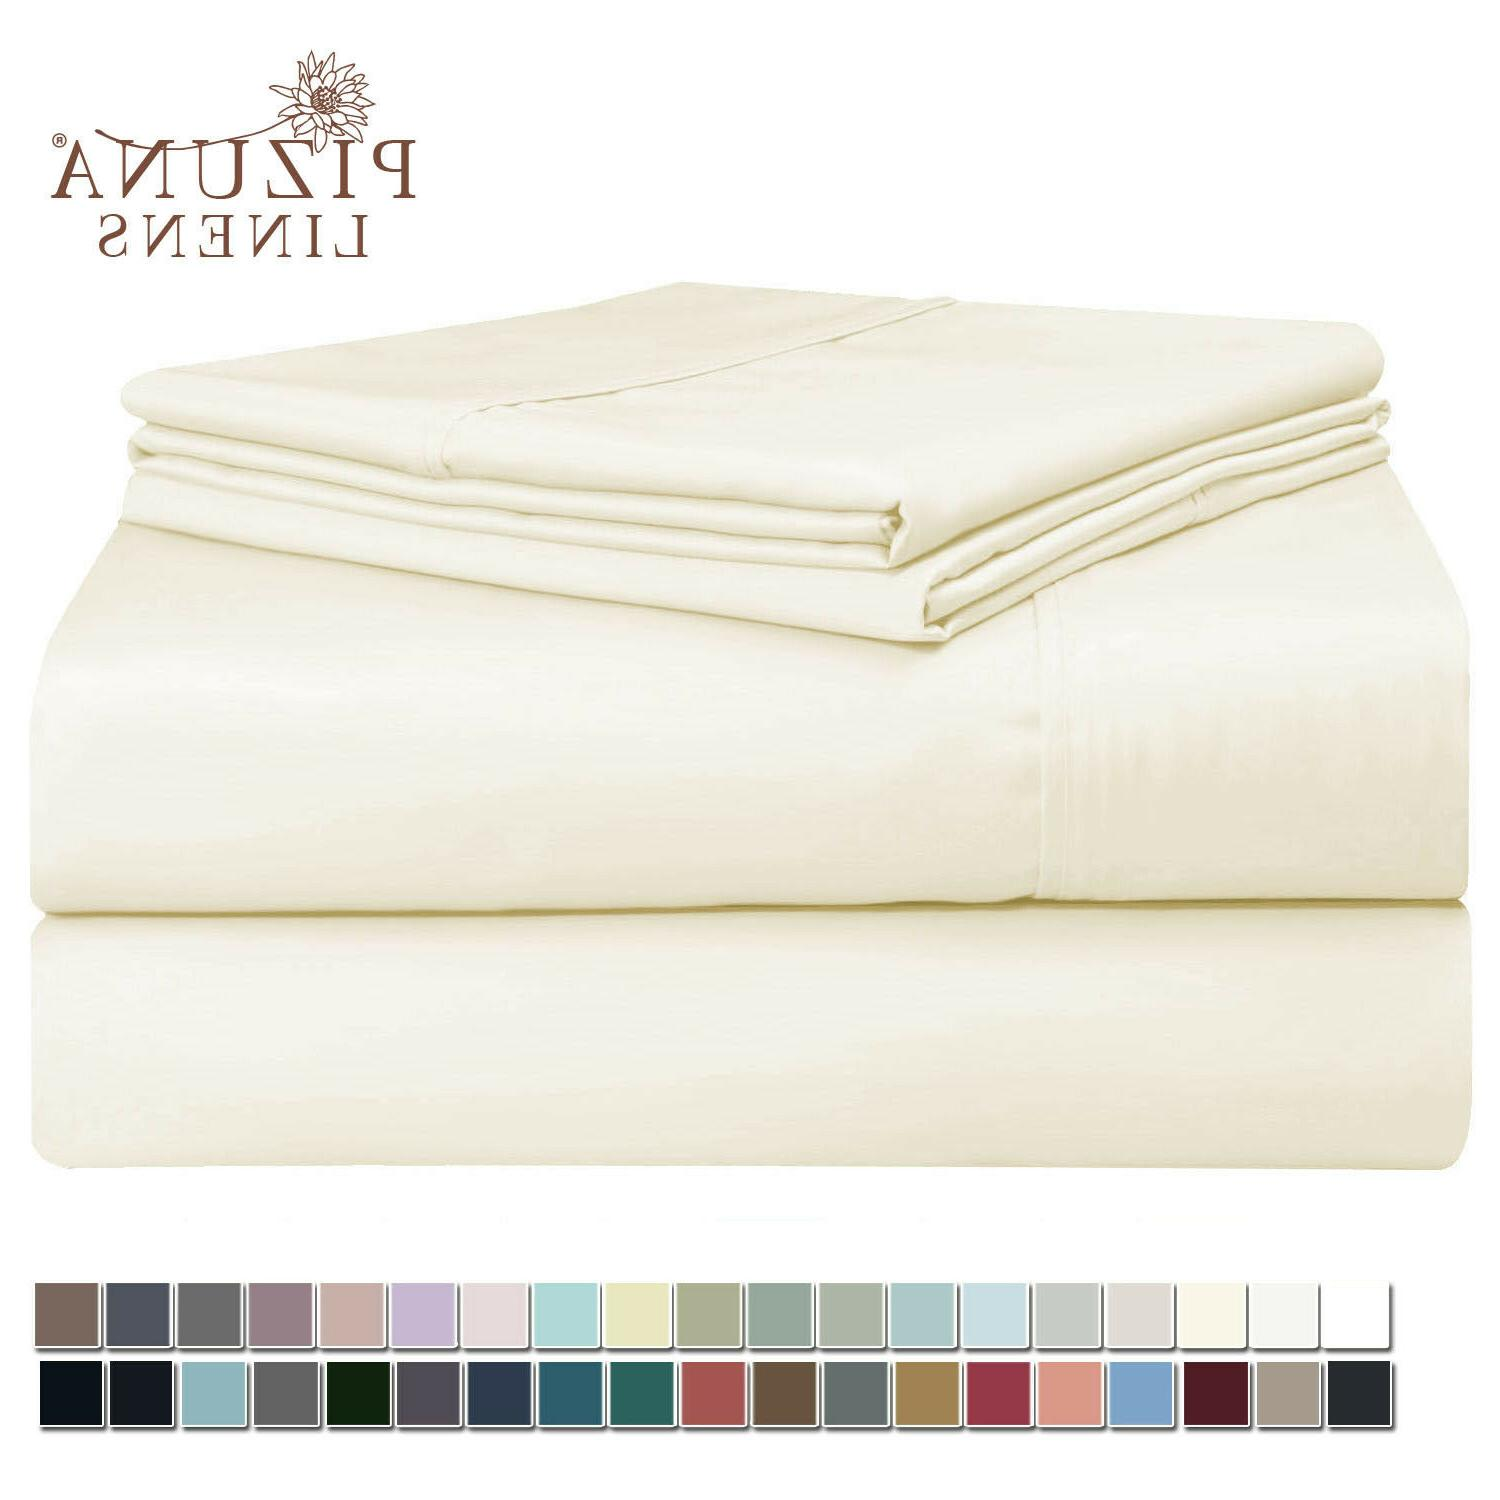 Clara Clark Premier 1800 Series 4pc Bed Sheet Set - King, Ca